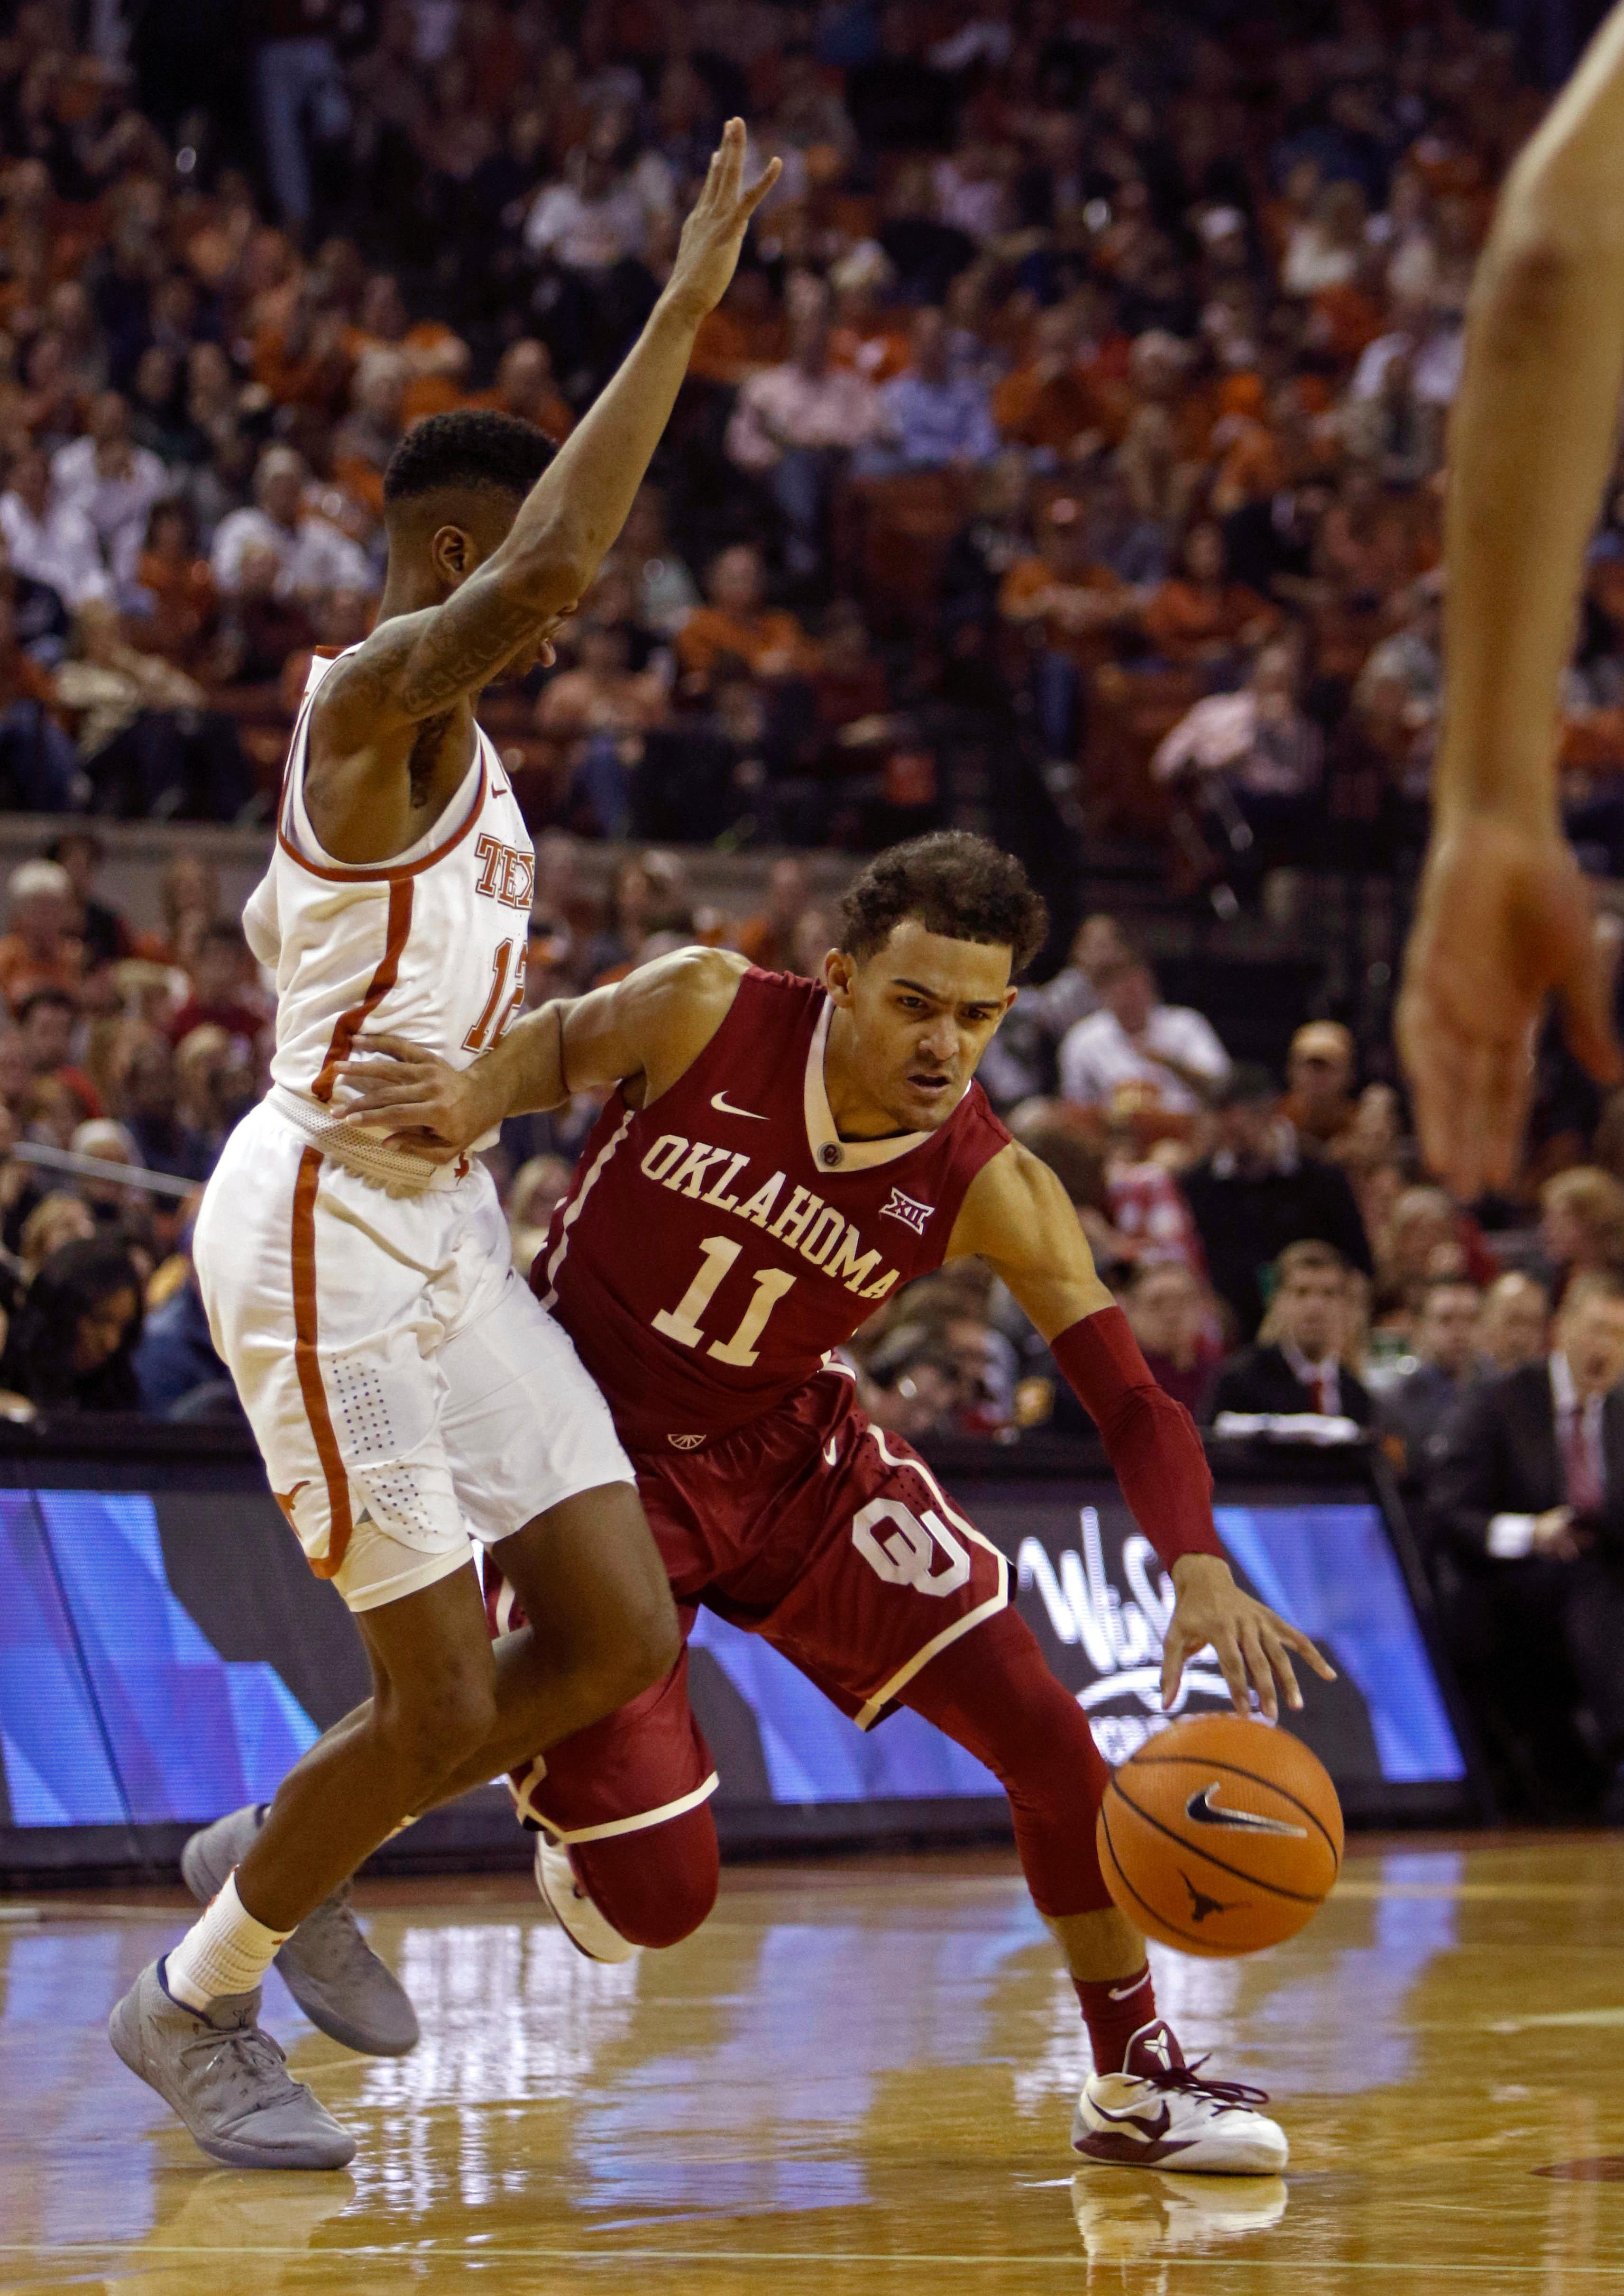 Oklahoma guard Trae Young (11) drives the ball against Texas guard Kerwin Roach II during the first half of an NCAA college basketball game, Saturday, Feb. 3, 2018, in Austin, Texas. (AP Photo/Michael Thomas)